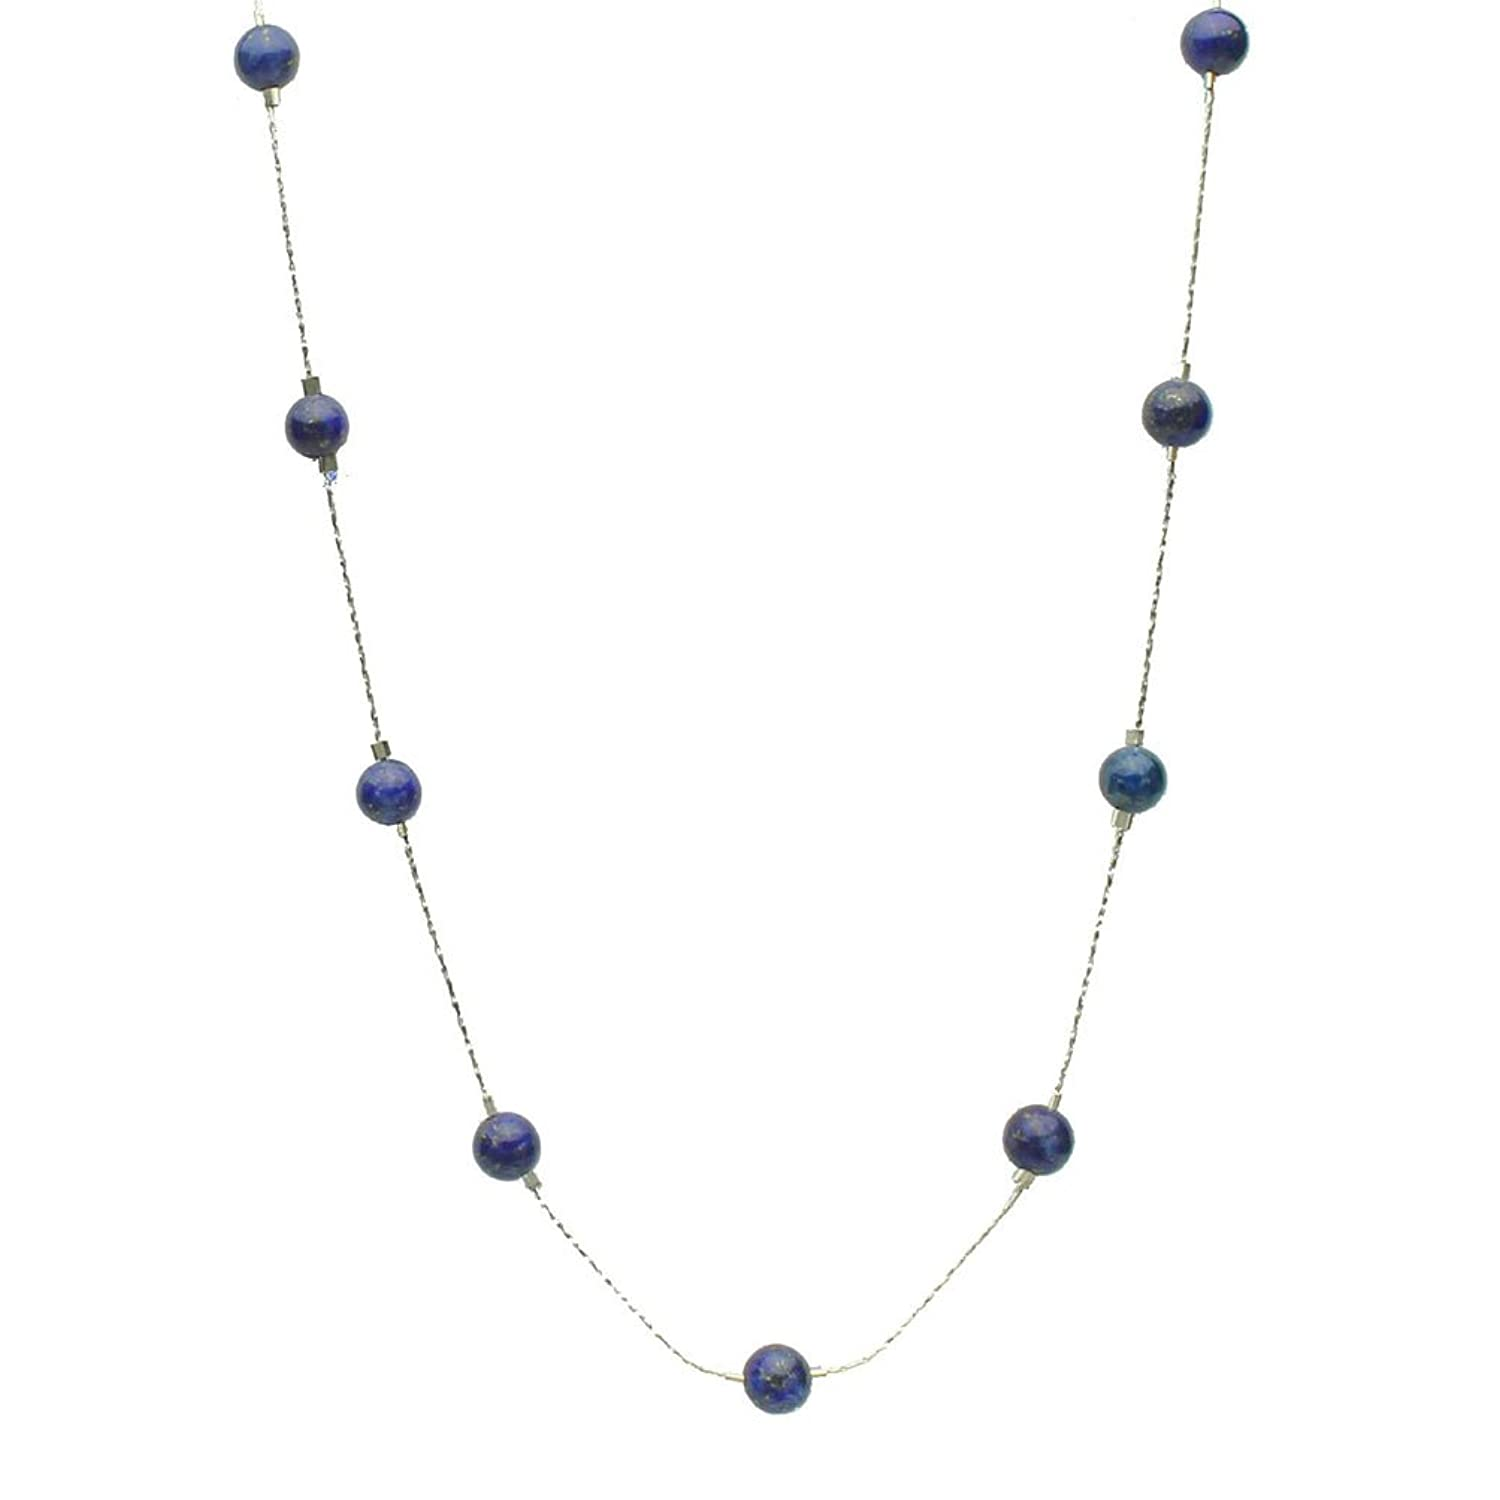 lapis stone necklace beads silver illusion jewelry blue amazon sterling com chain dp bead station